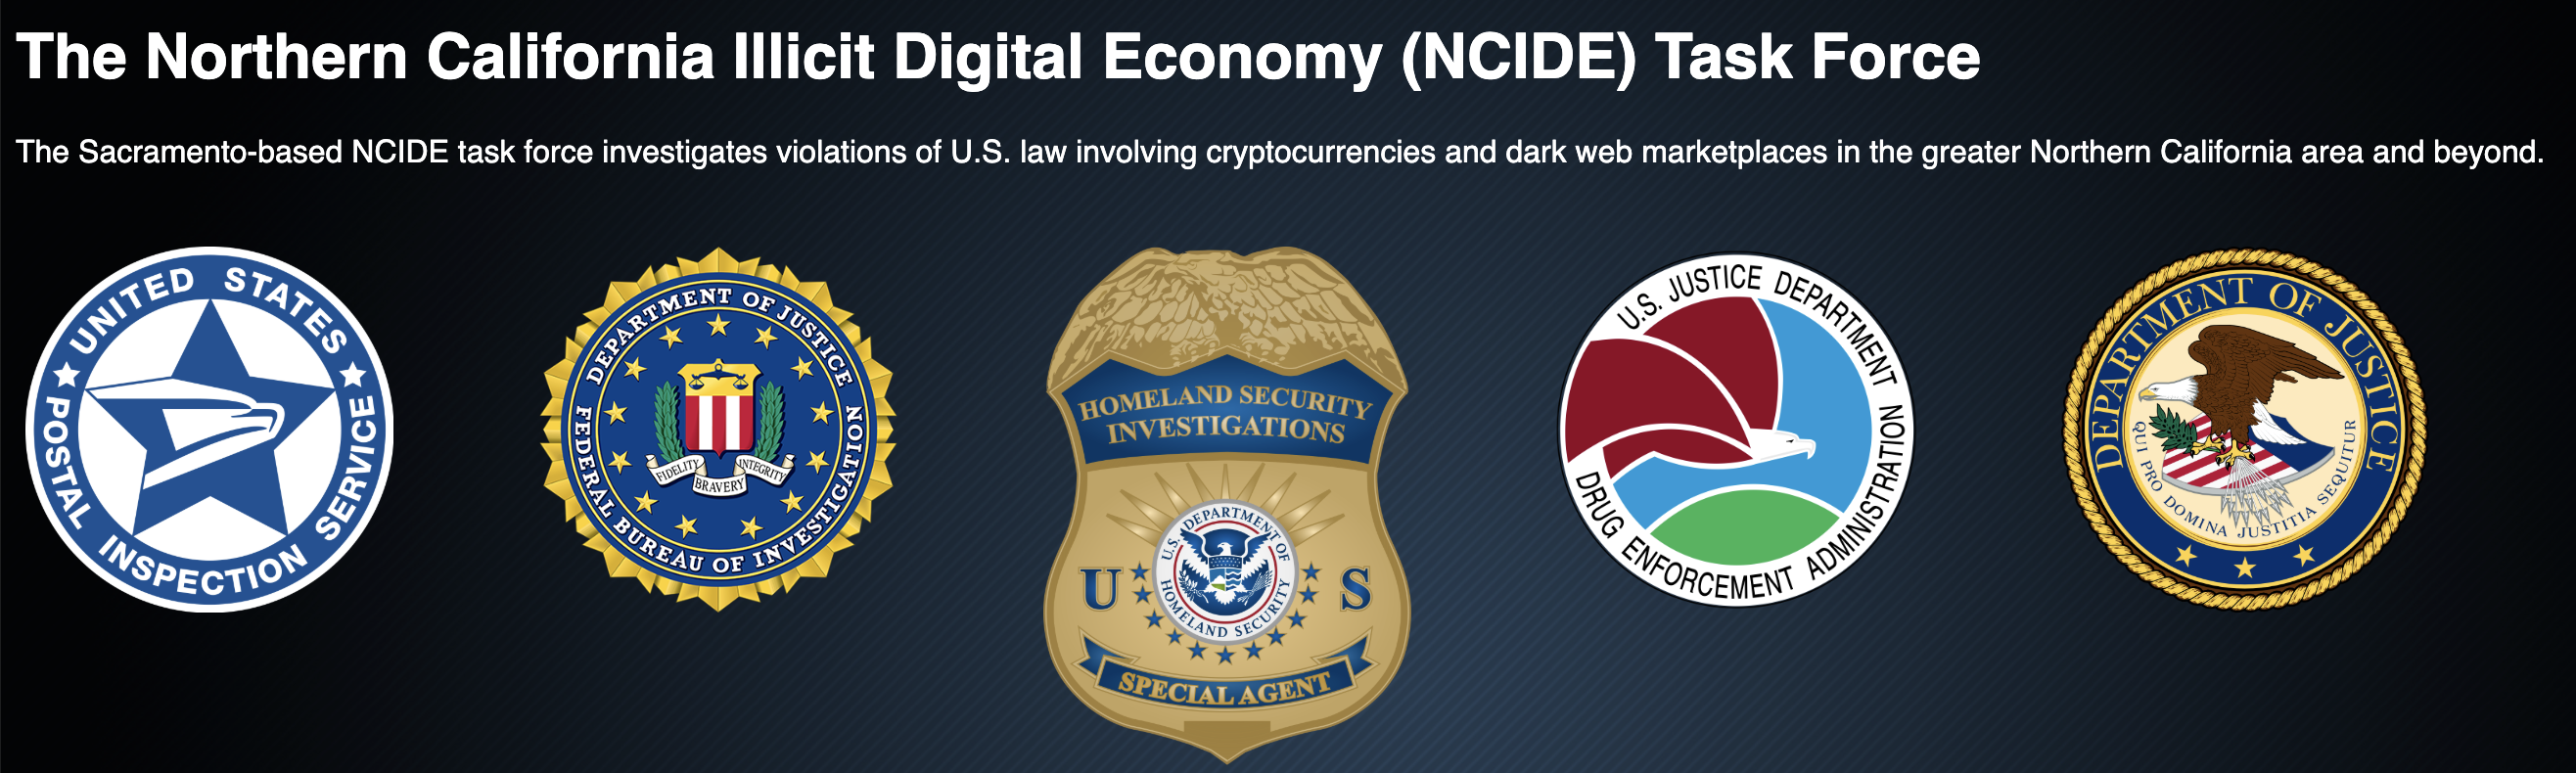 7 Darknet Markets Where Your Cryptocurrency Is Welcome